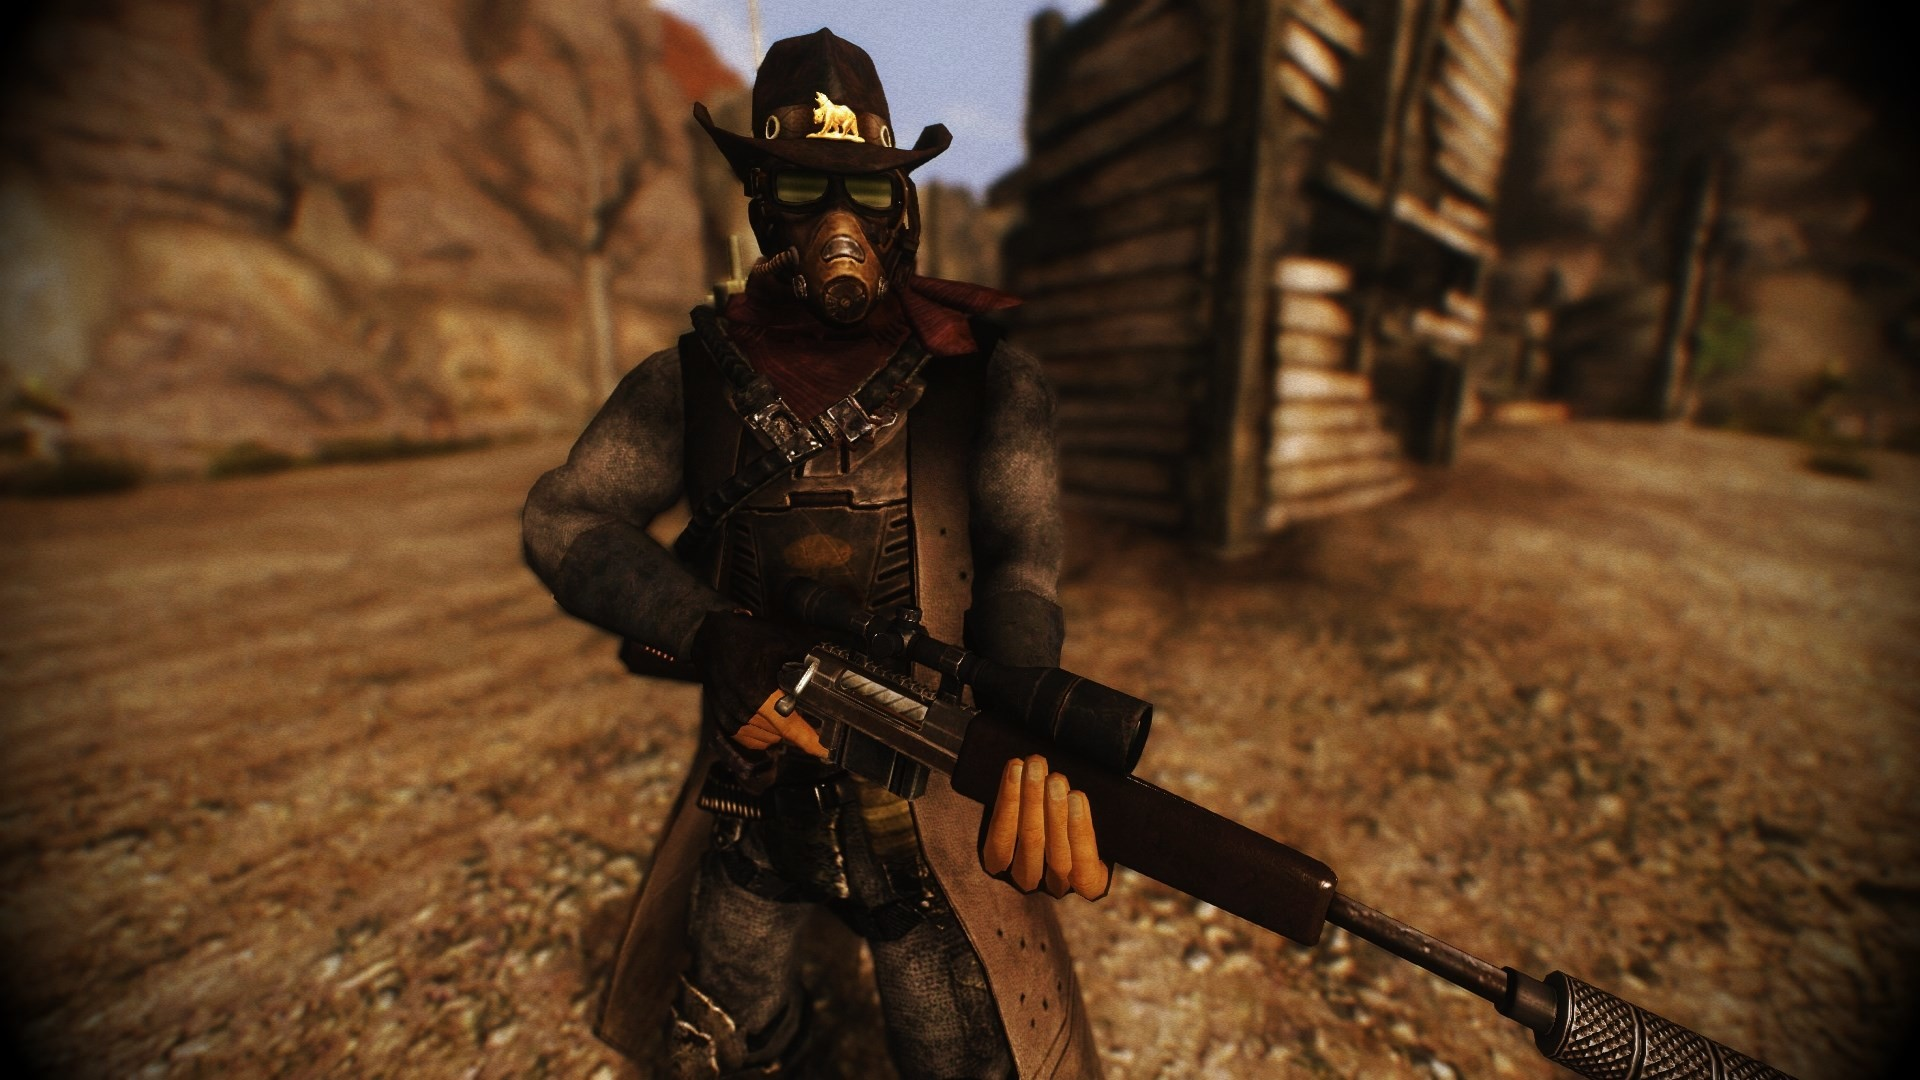 … fallout new vegas wallpapers and backgrounds …